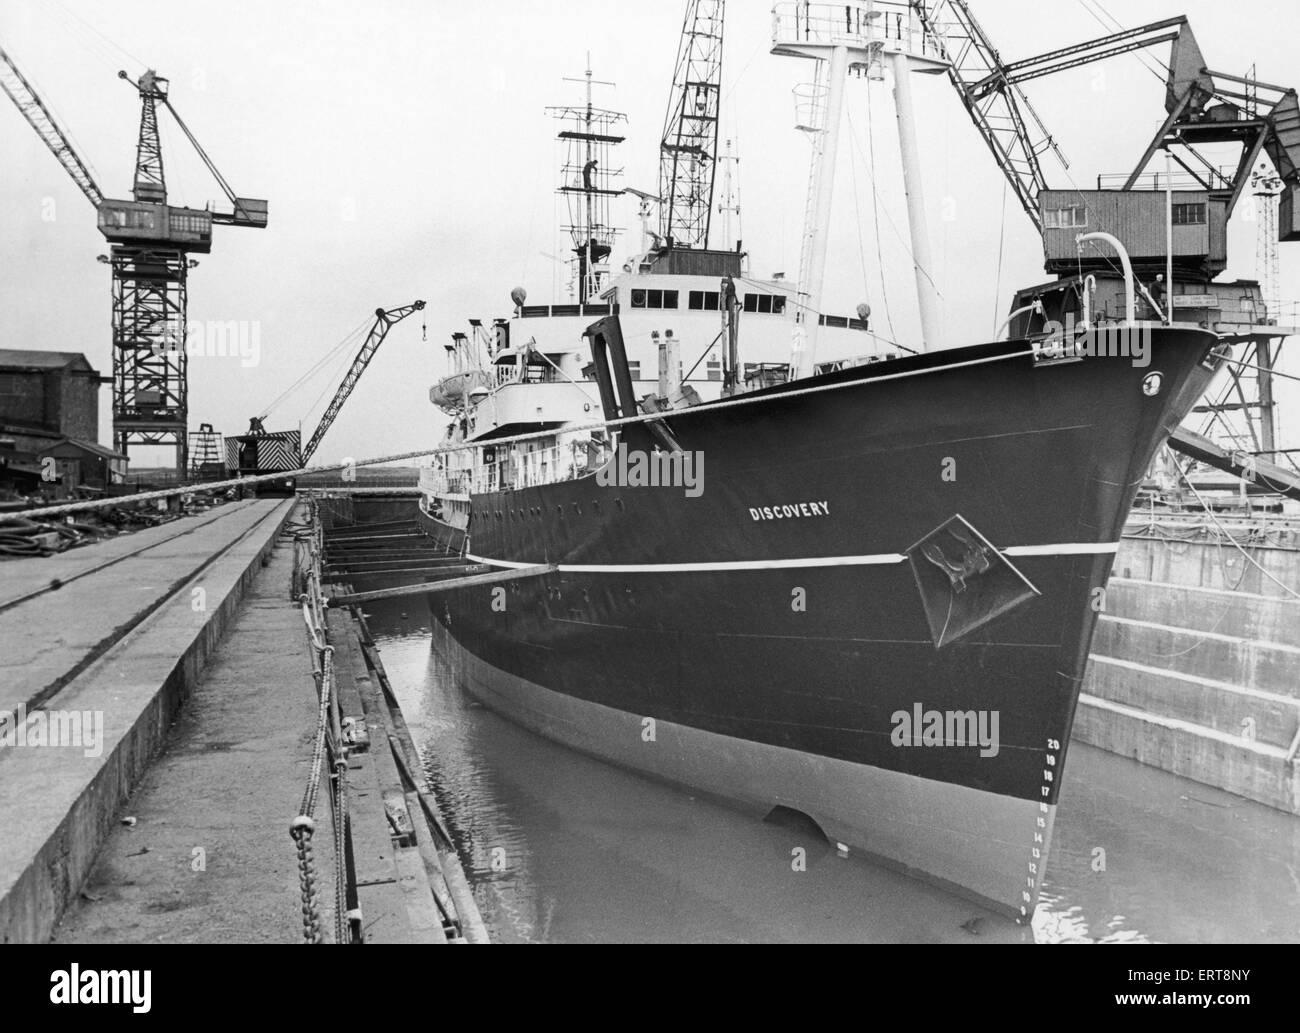 The Discovery seen here in Smiths Dock South Bank. 11th September 1980 - Stock Image